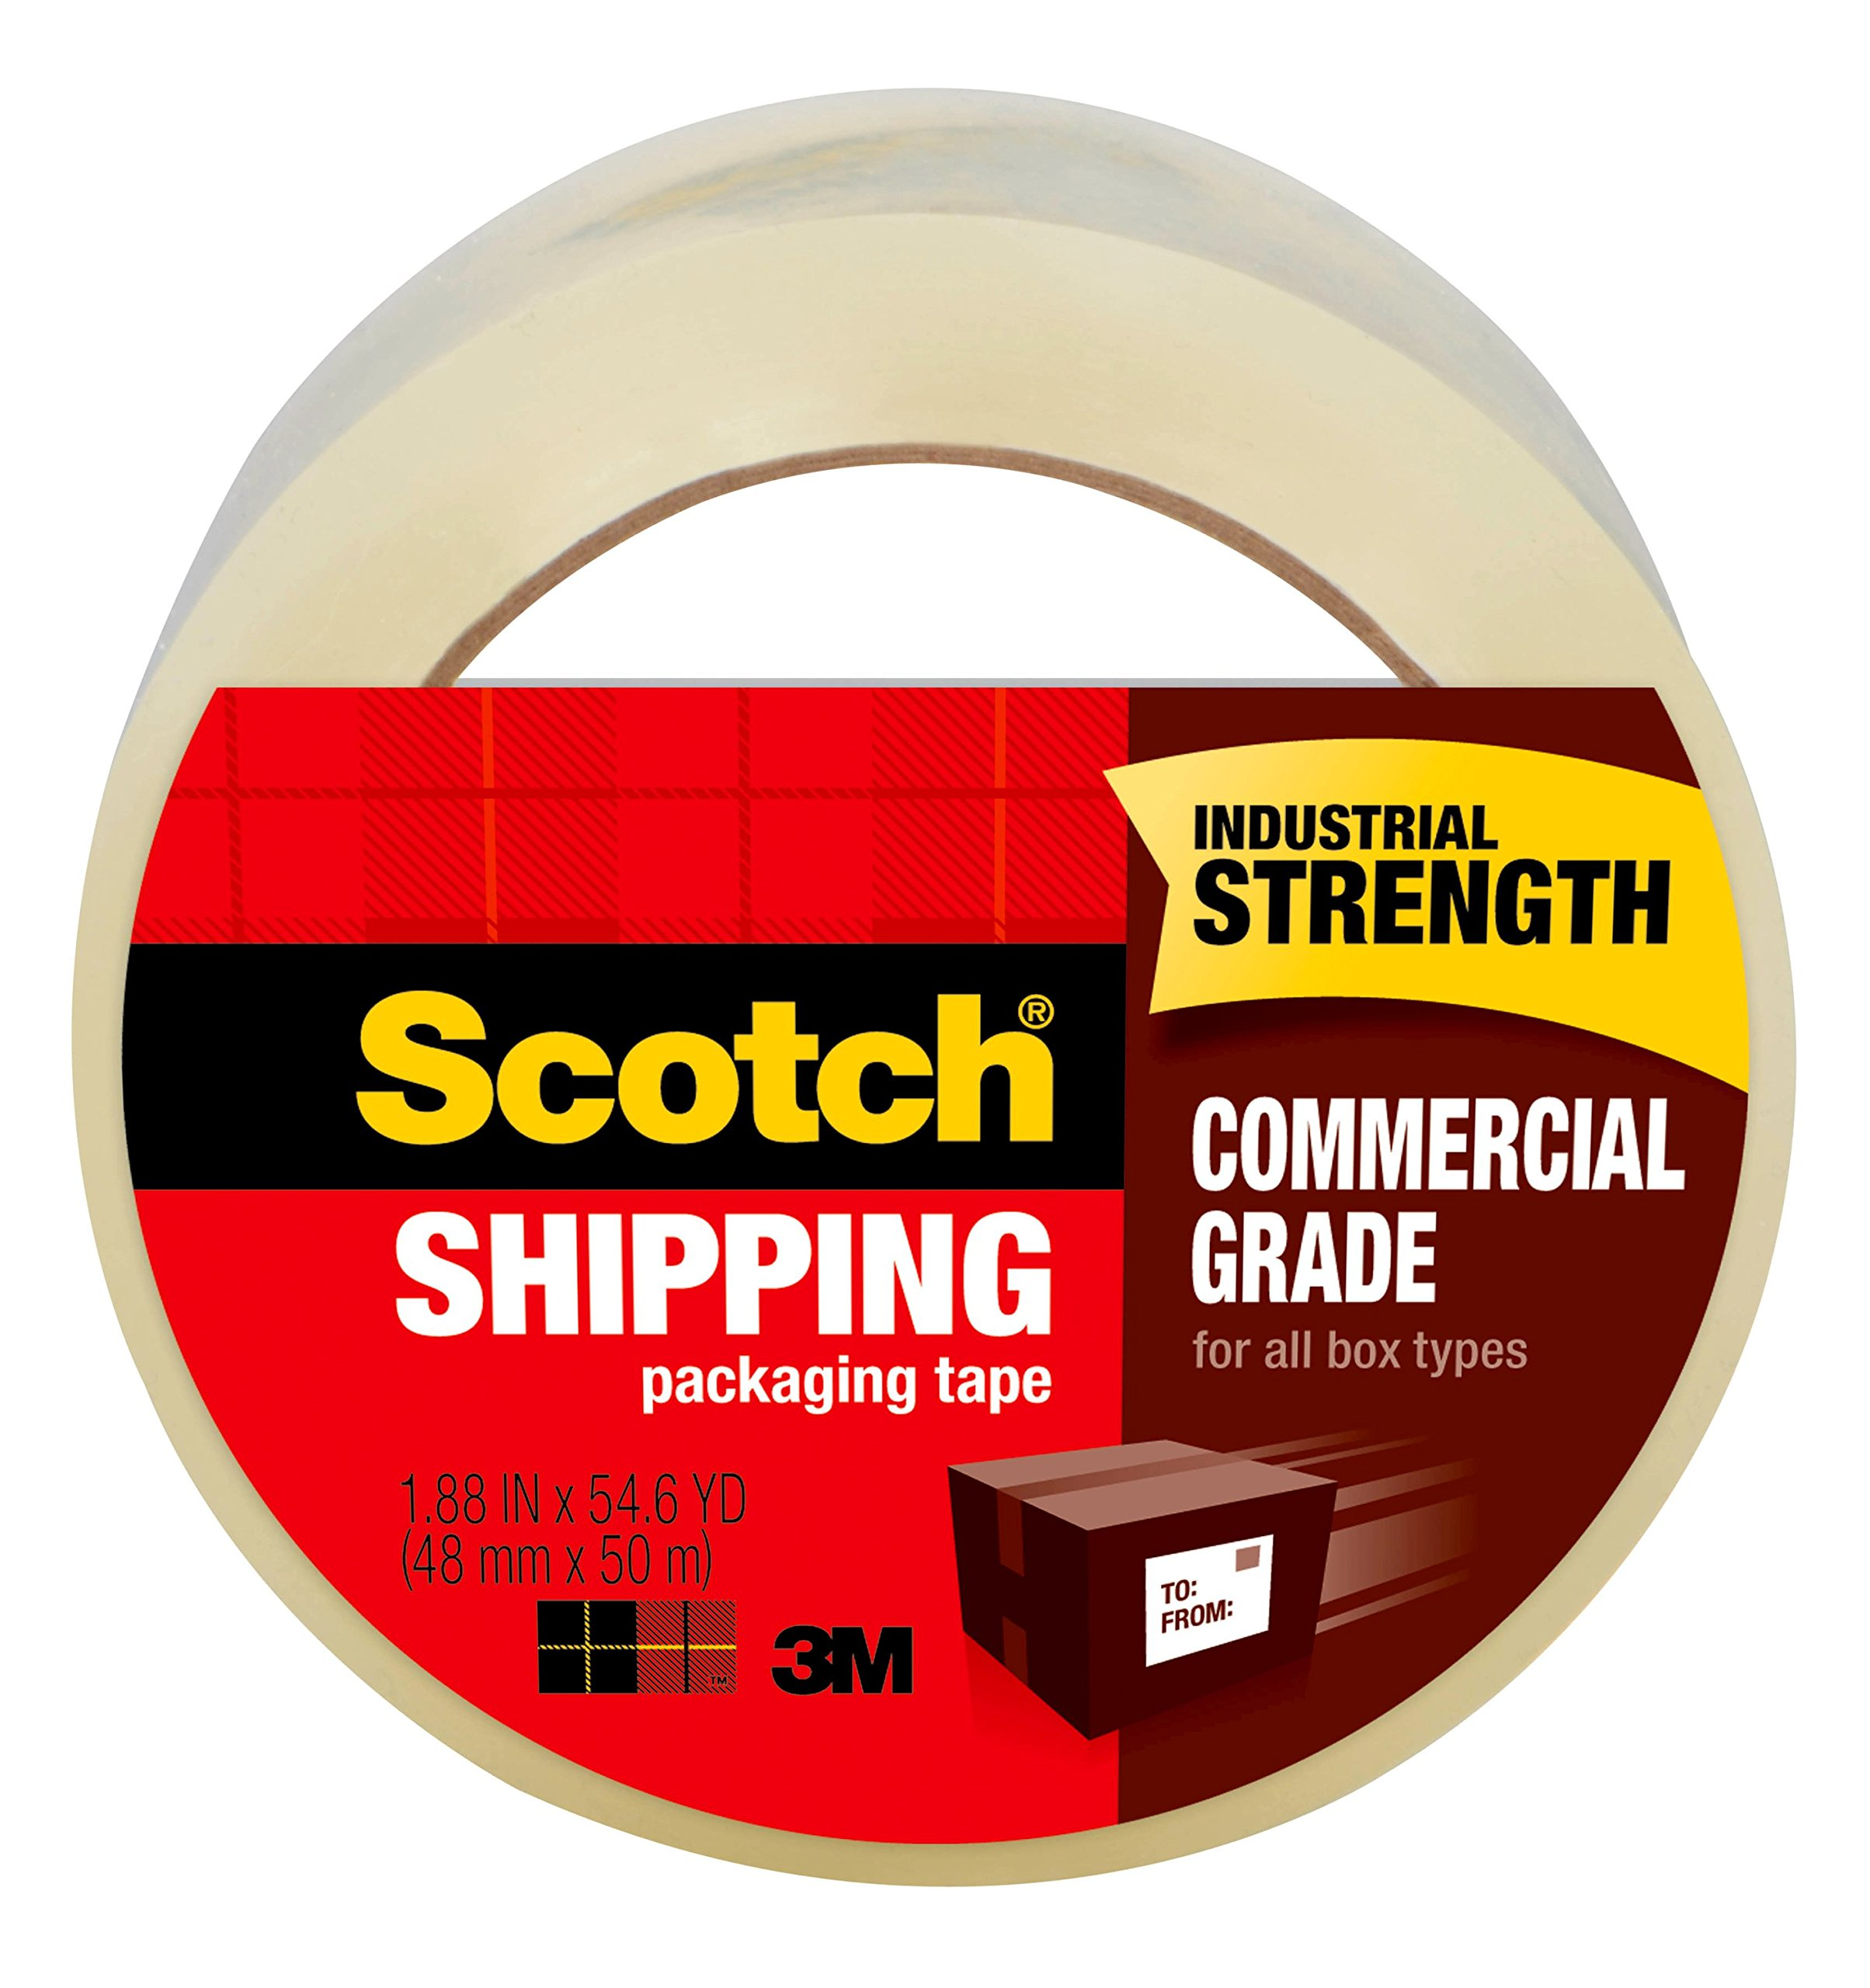 Scotch Commercial Grade Shipping Packaging Tape, 1.88 in x 54.6 yd, Case Value 48-Pack (3750-CS48) by Scotch (Image #1)